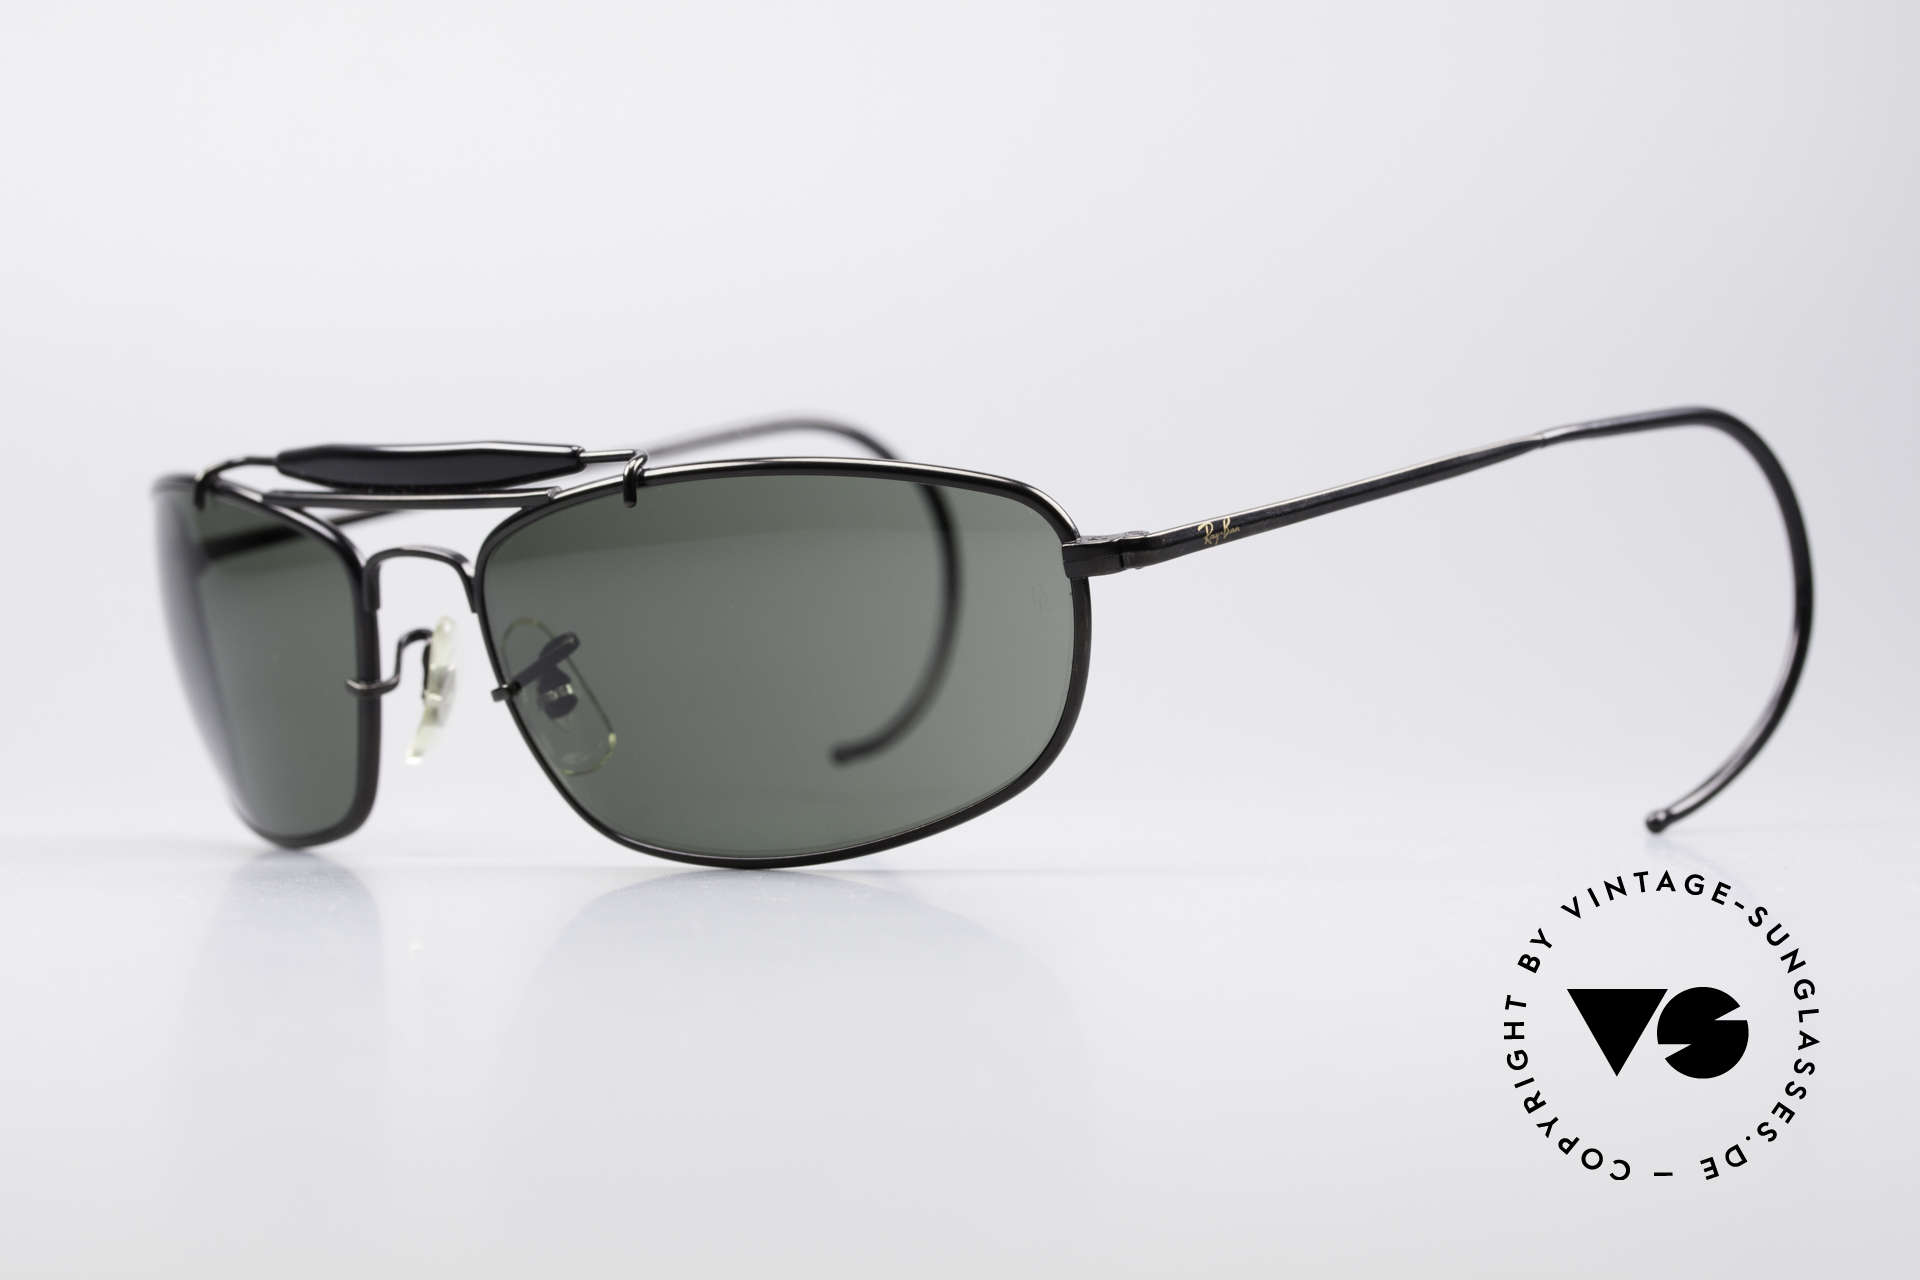 Ray Ban Sport Metal 1994 Olympic Series B&L USA, best manufacturing from the USA (+ Ray-Ban soft case), Made for Men